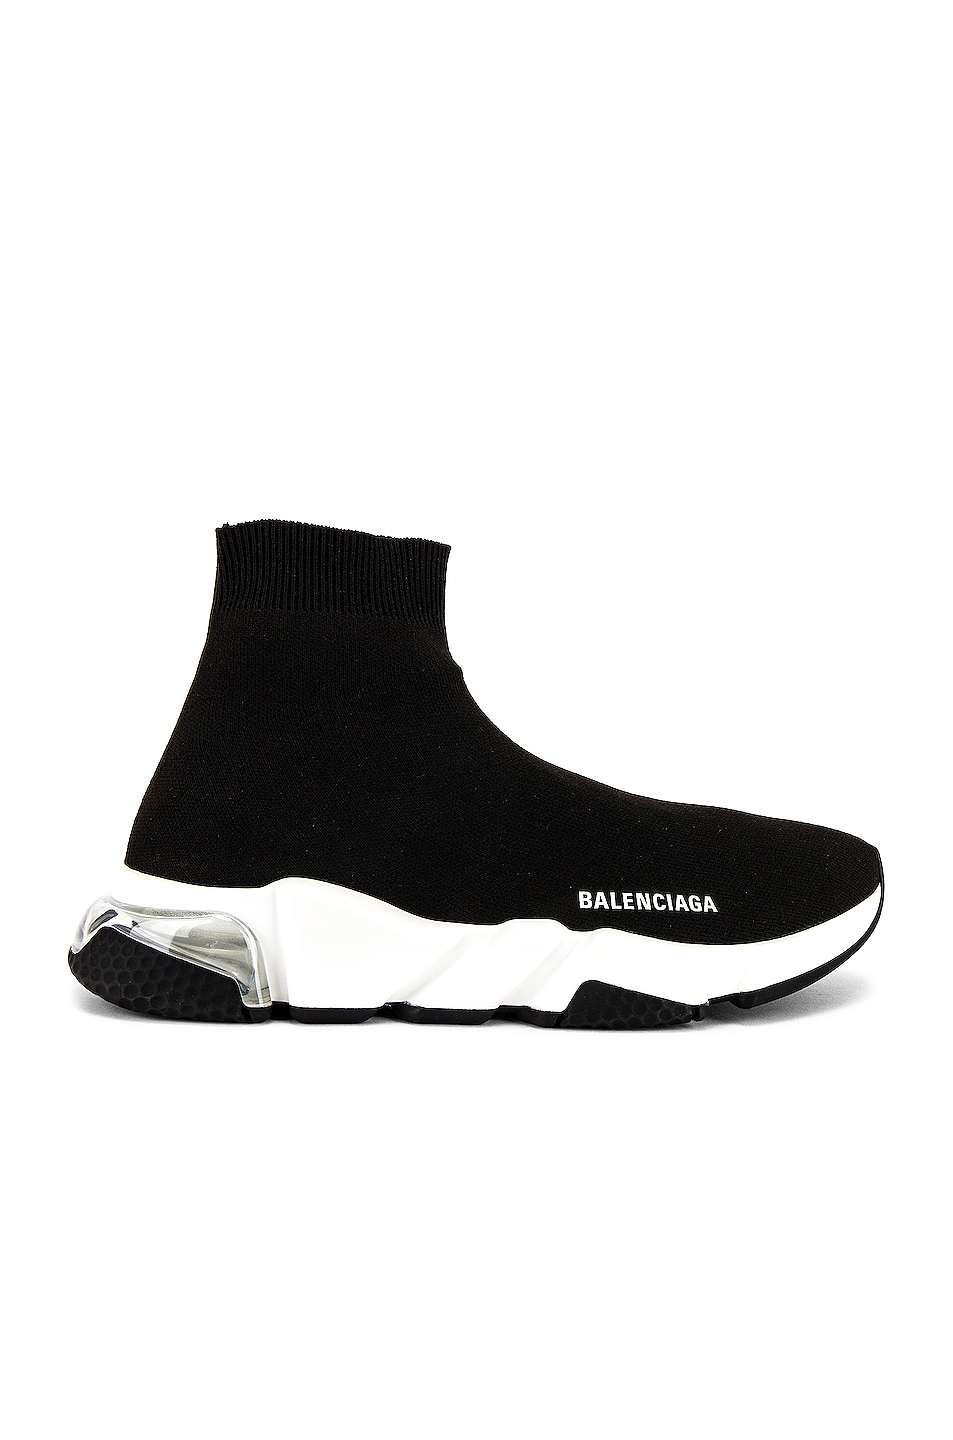 Image 1 of Balenciaga Speed Light Sneaker in Black & White & Clear